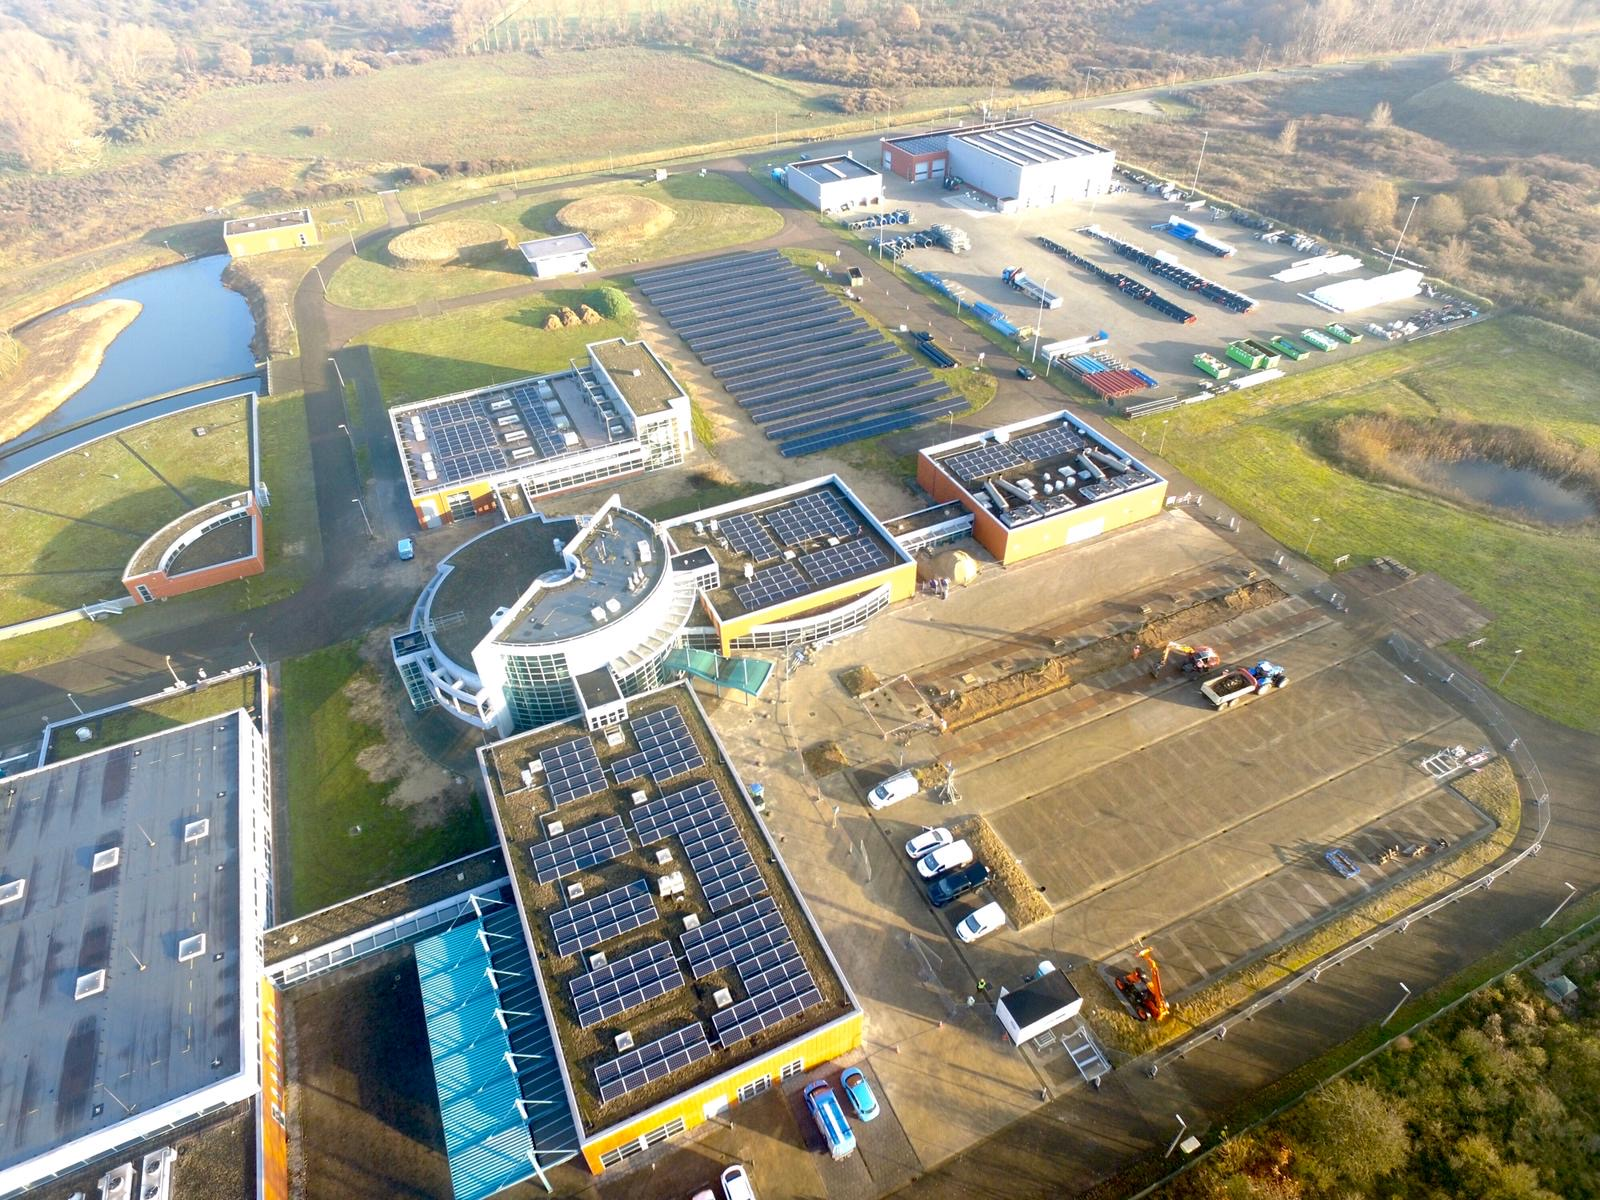 Project: PWN veldopstellingen en solar parking